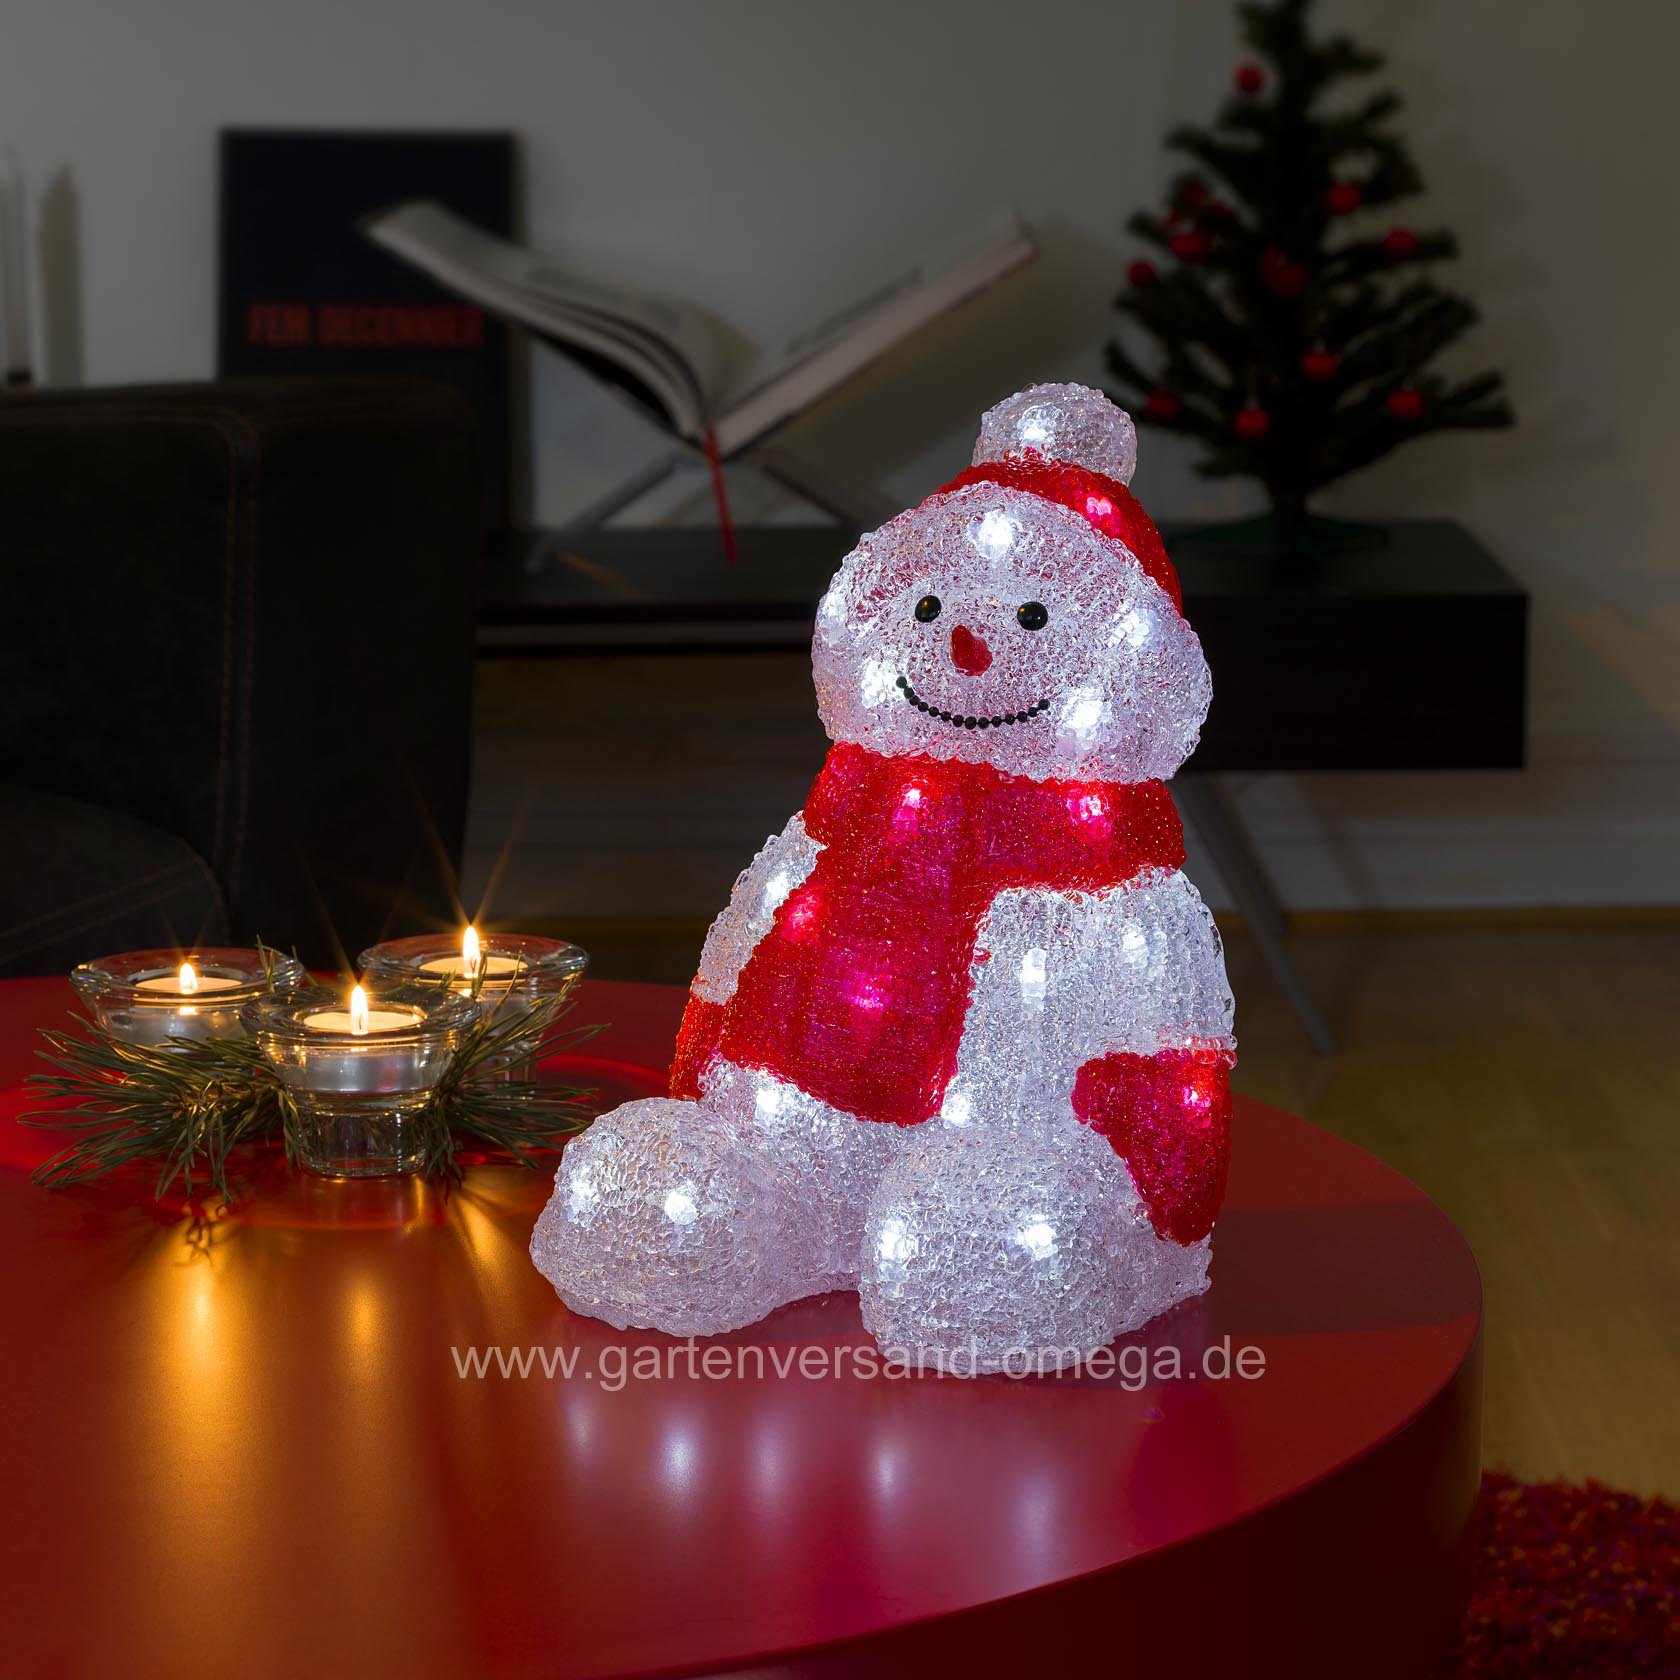 led acryl schneemann sitzend acrylschneemann acrylfigur. Black Bedroom Furniture Sets. Home Design Ideas